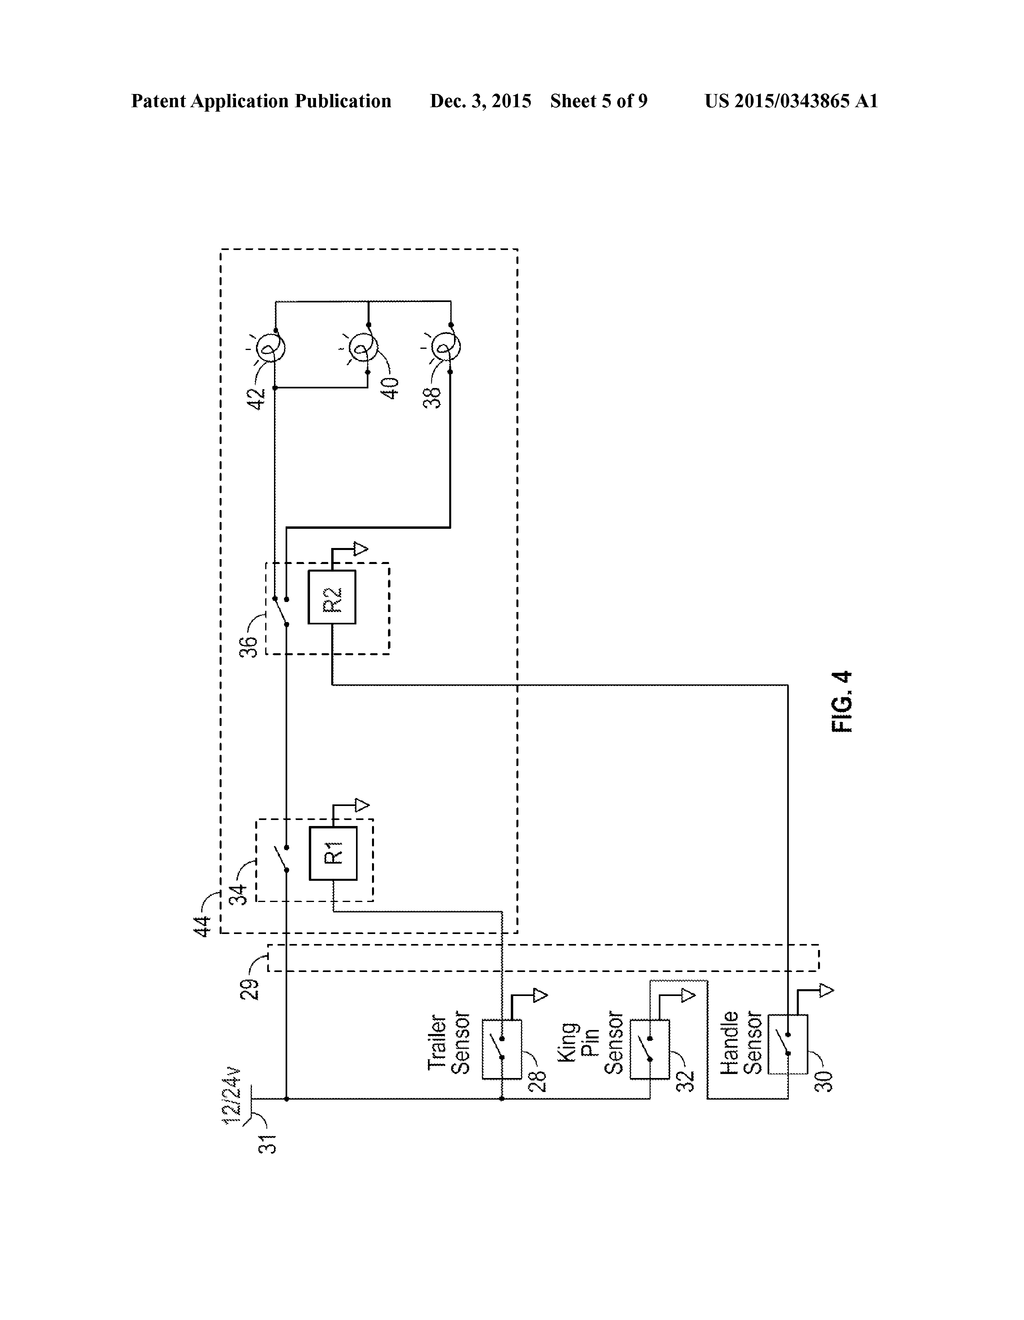 Safety Enhanced Turntable Or Fifth Wheel For Coupling A Semi Trailer Schematics To Prime Mover Diagram Schematic And Image 06